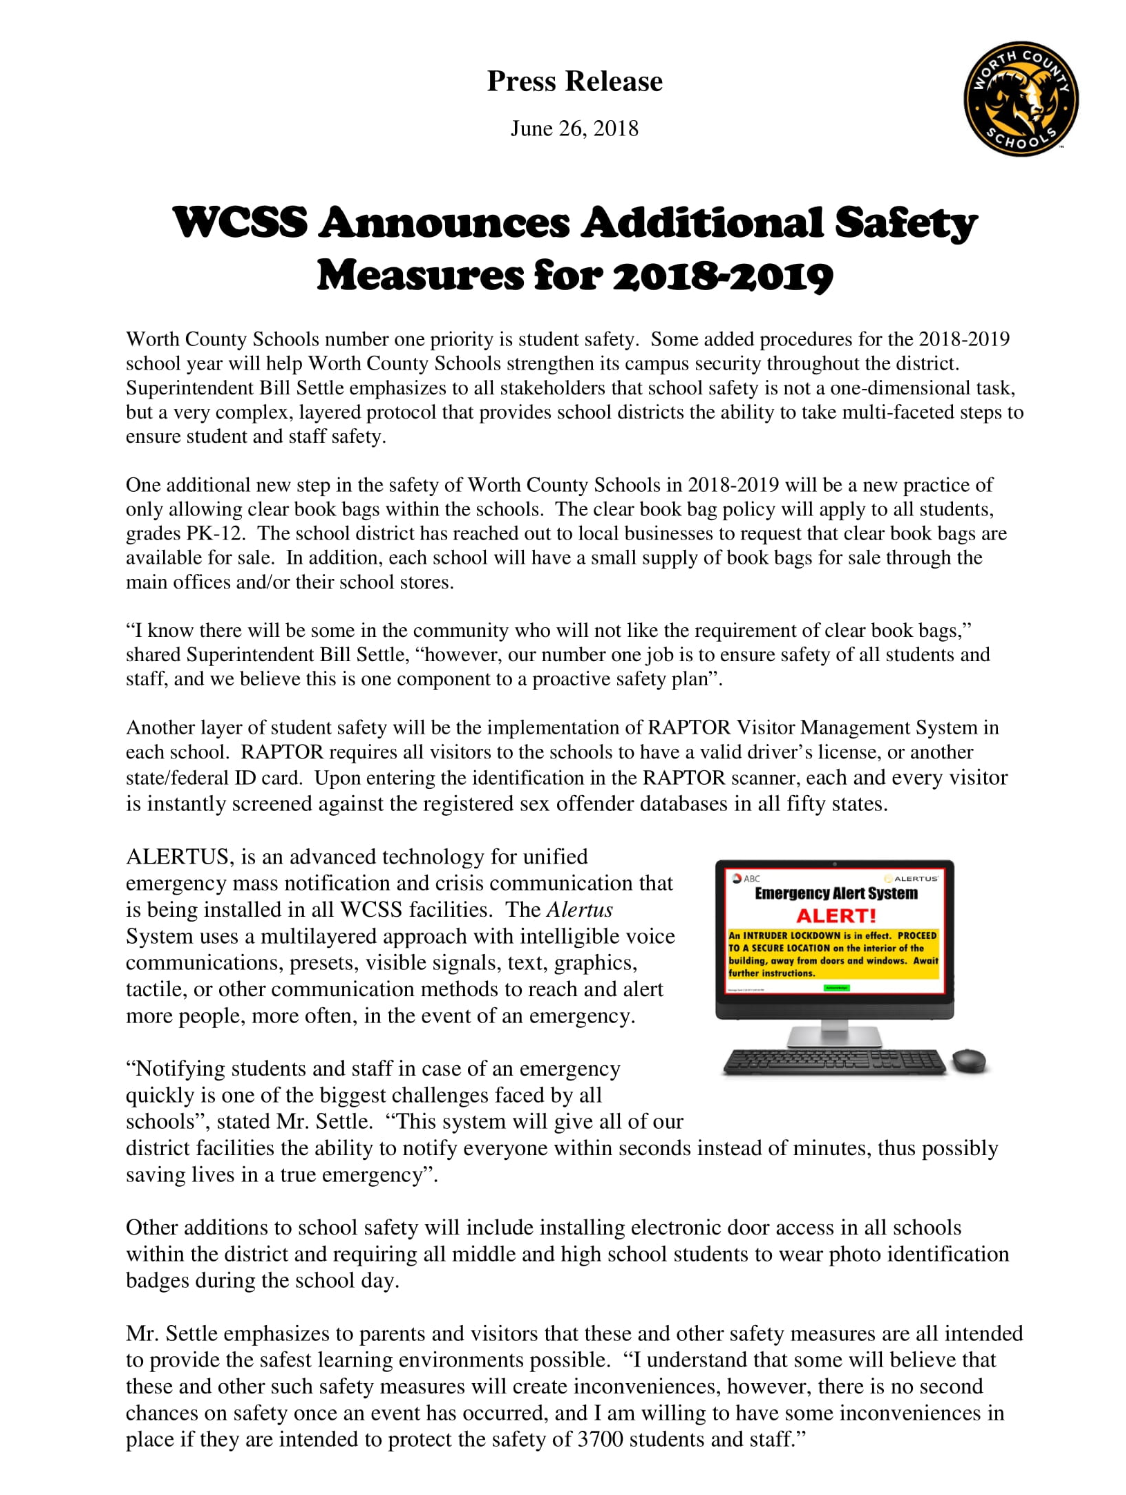 2018-2019 Press Release:  Additional Safety Measures